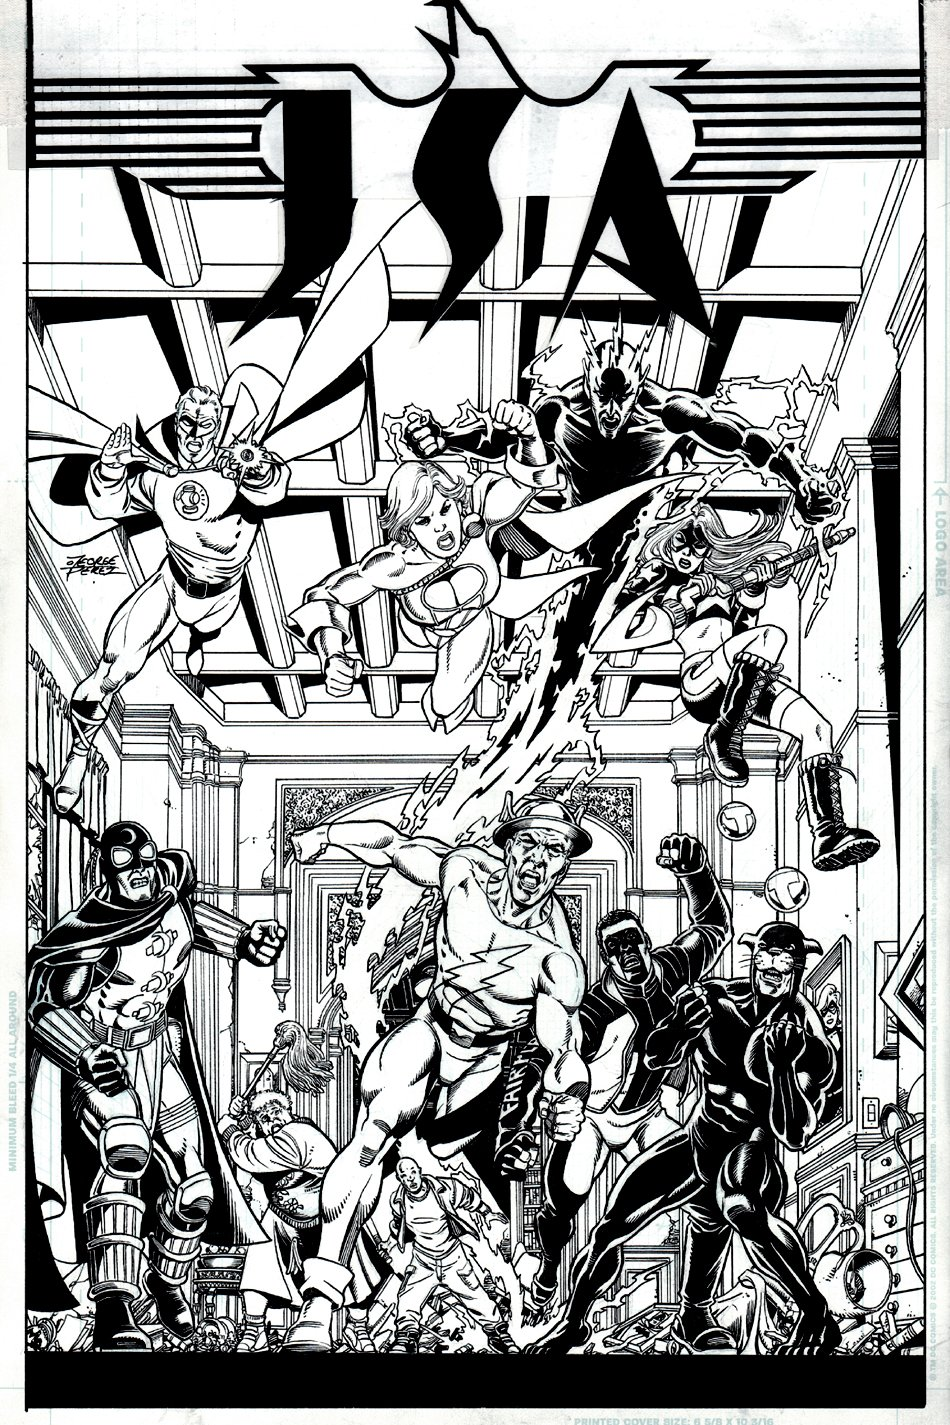 JSA #84 Cover (10 Heroes!) 2006